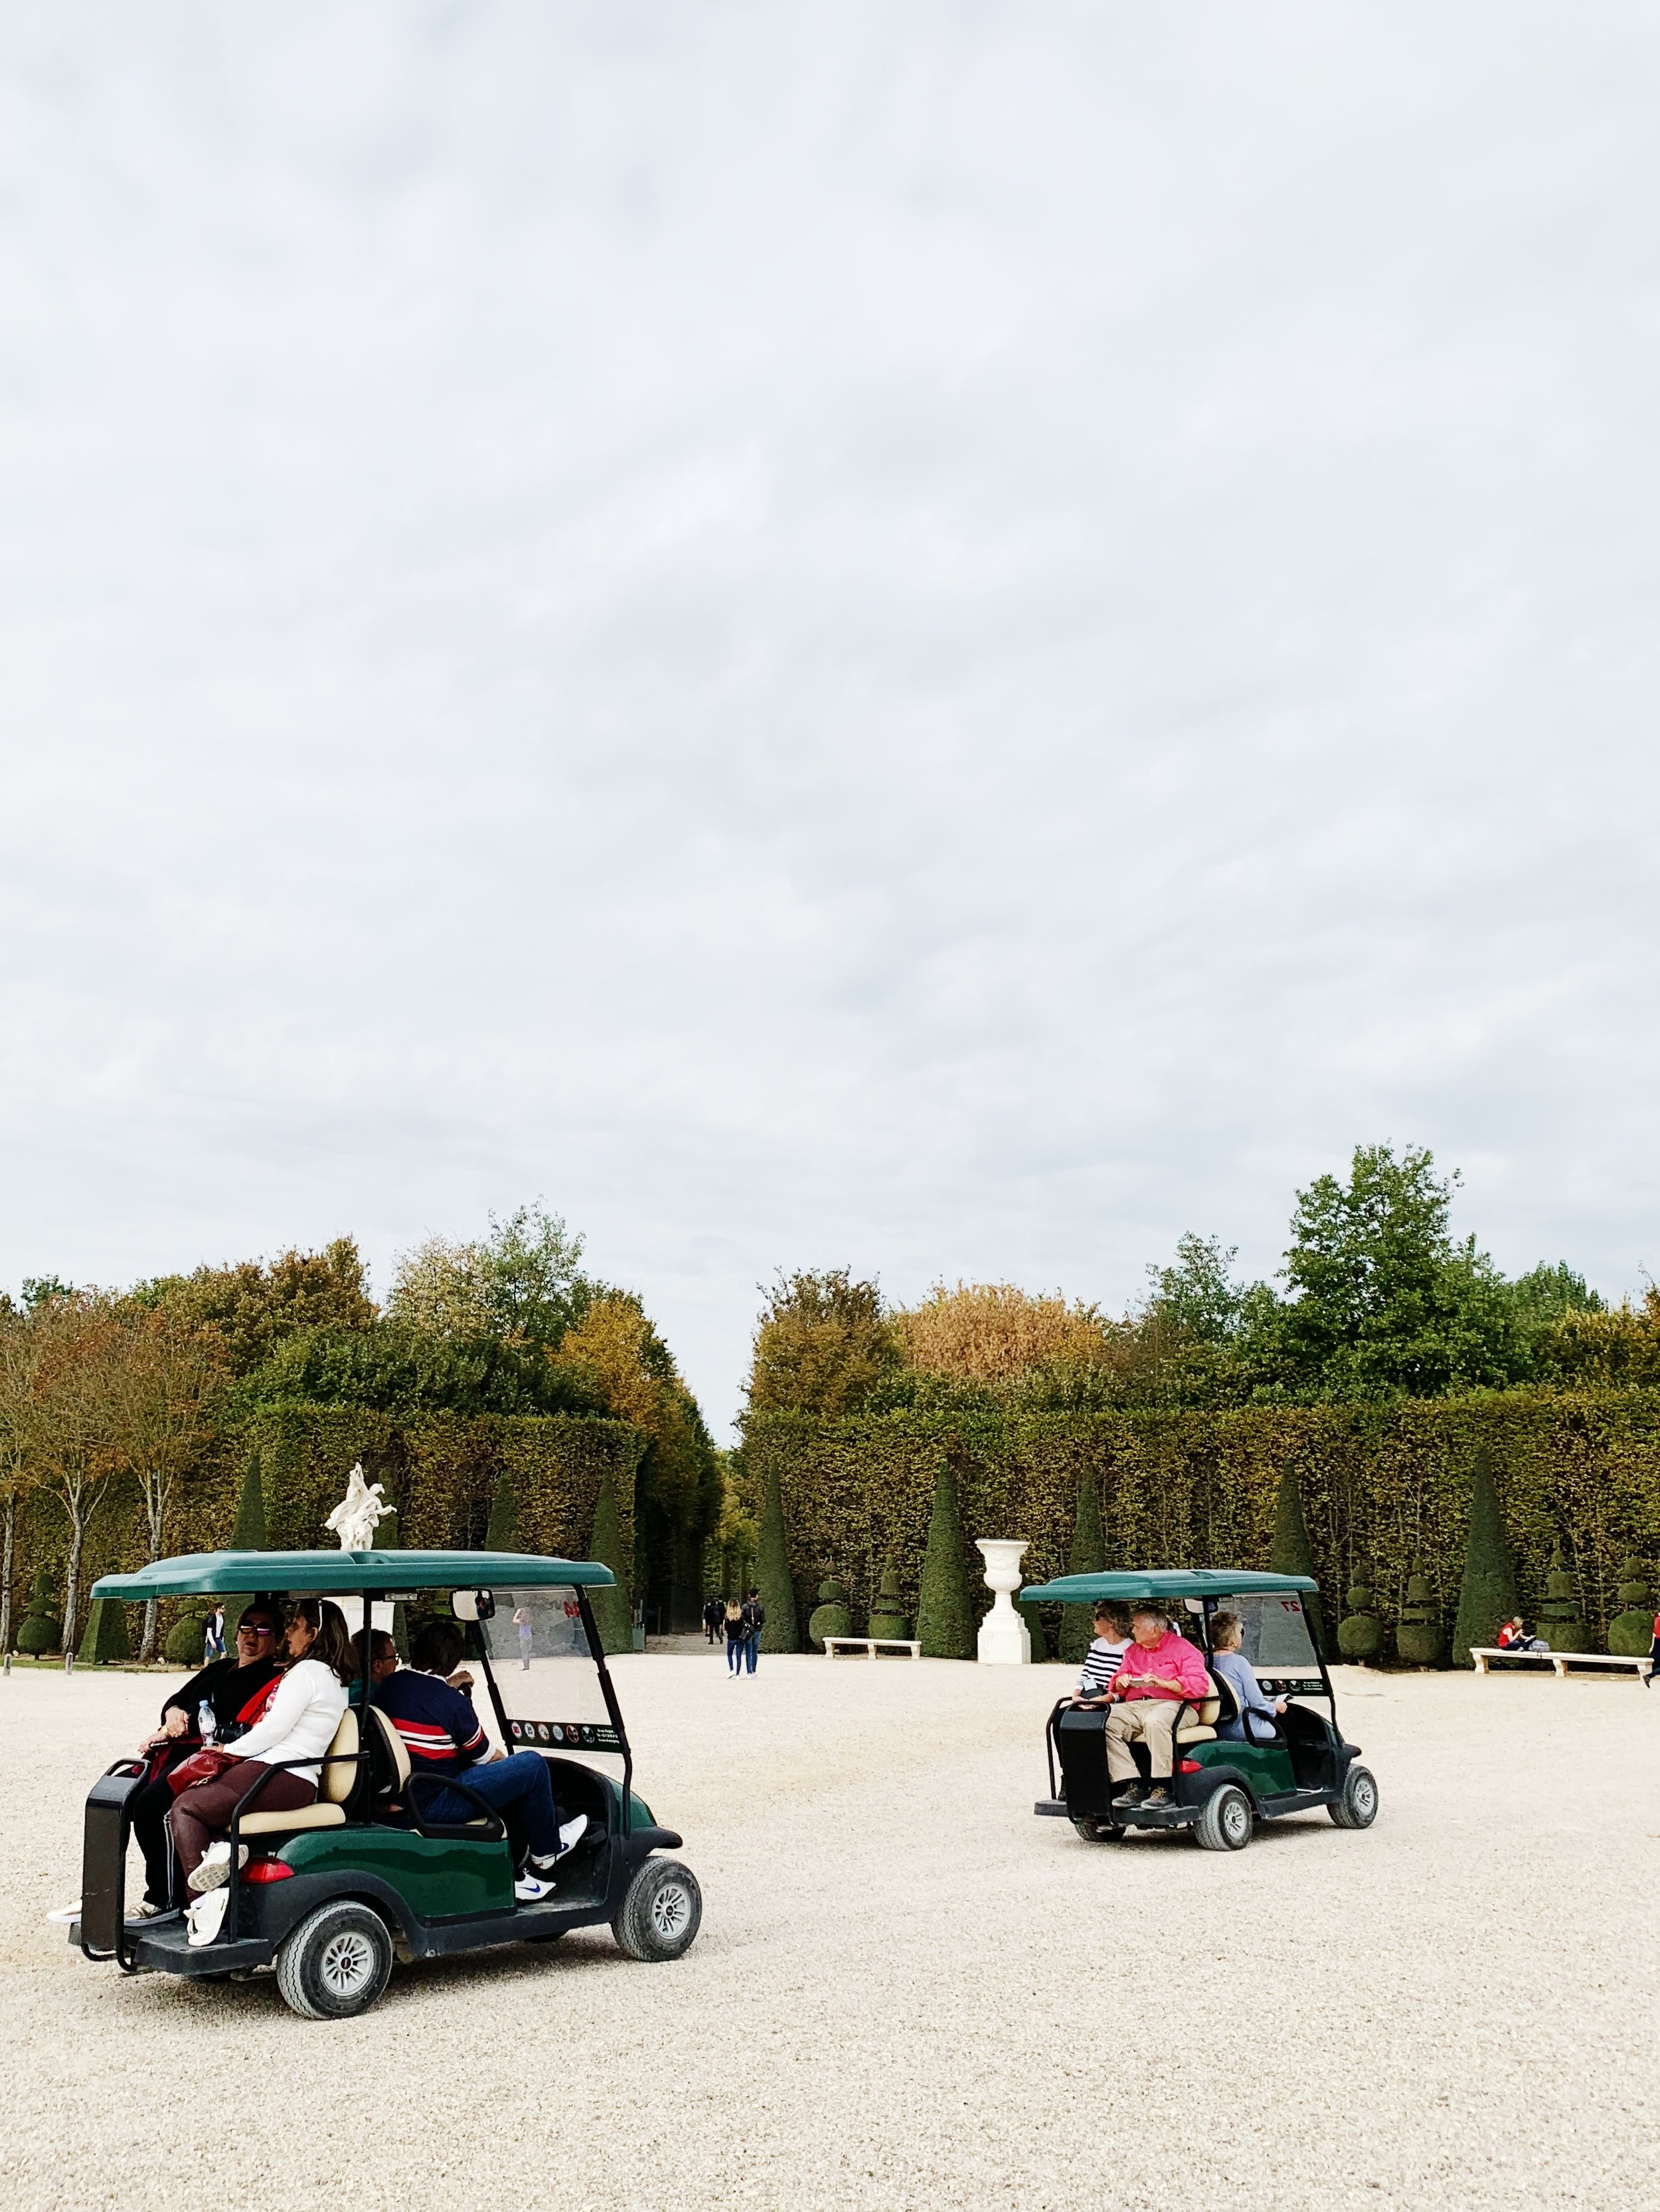 You can rent golf carts to drive around the grounds, they're so expansive.